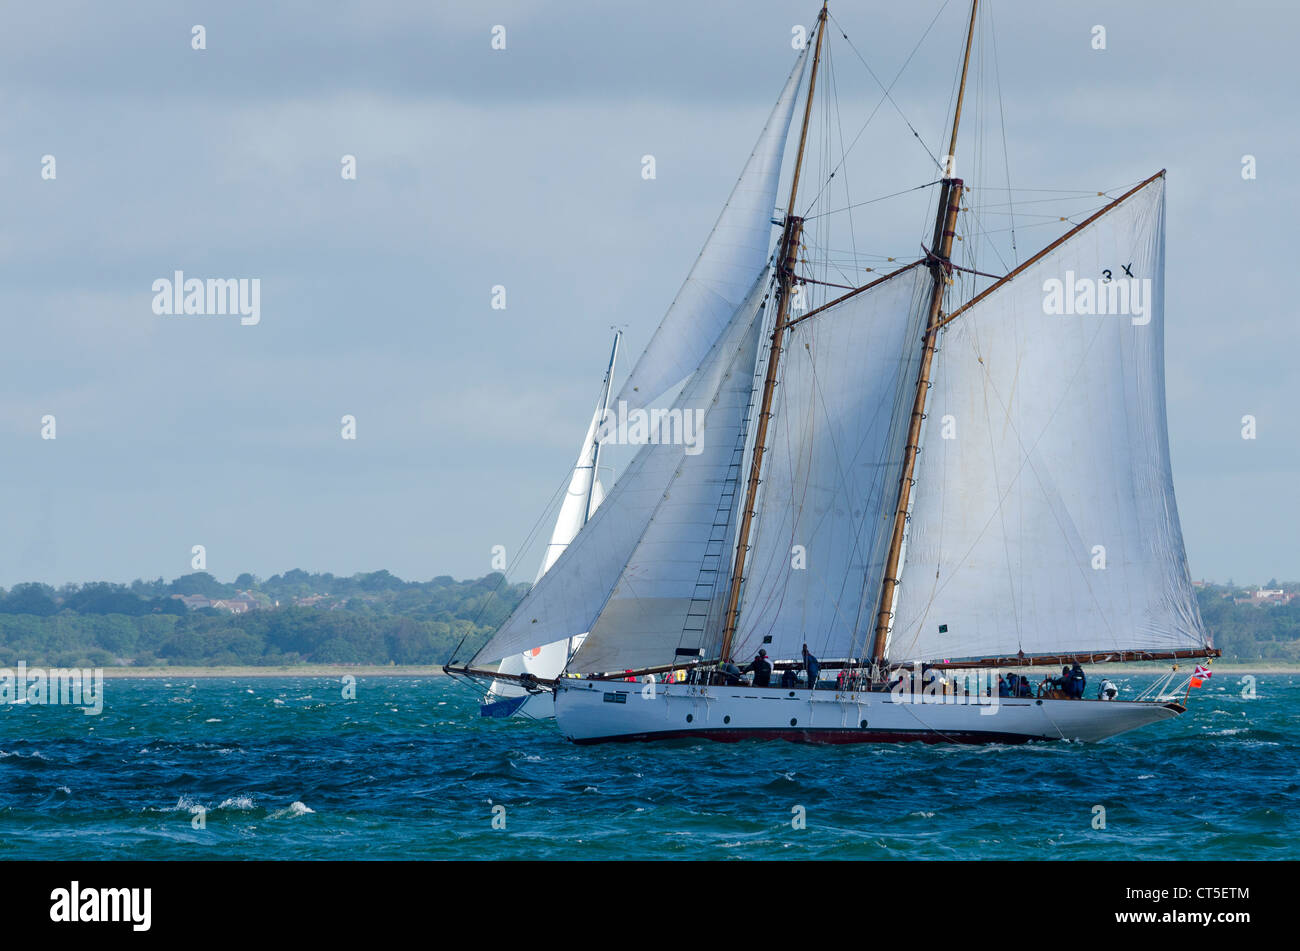 Gaff Rig Stock Photos & Gaff Rig Stock Images - Alamy